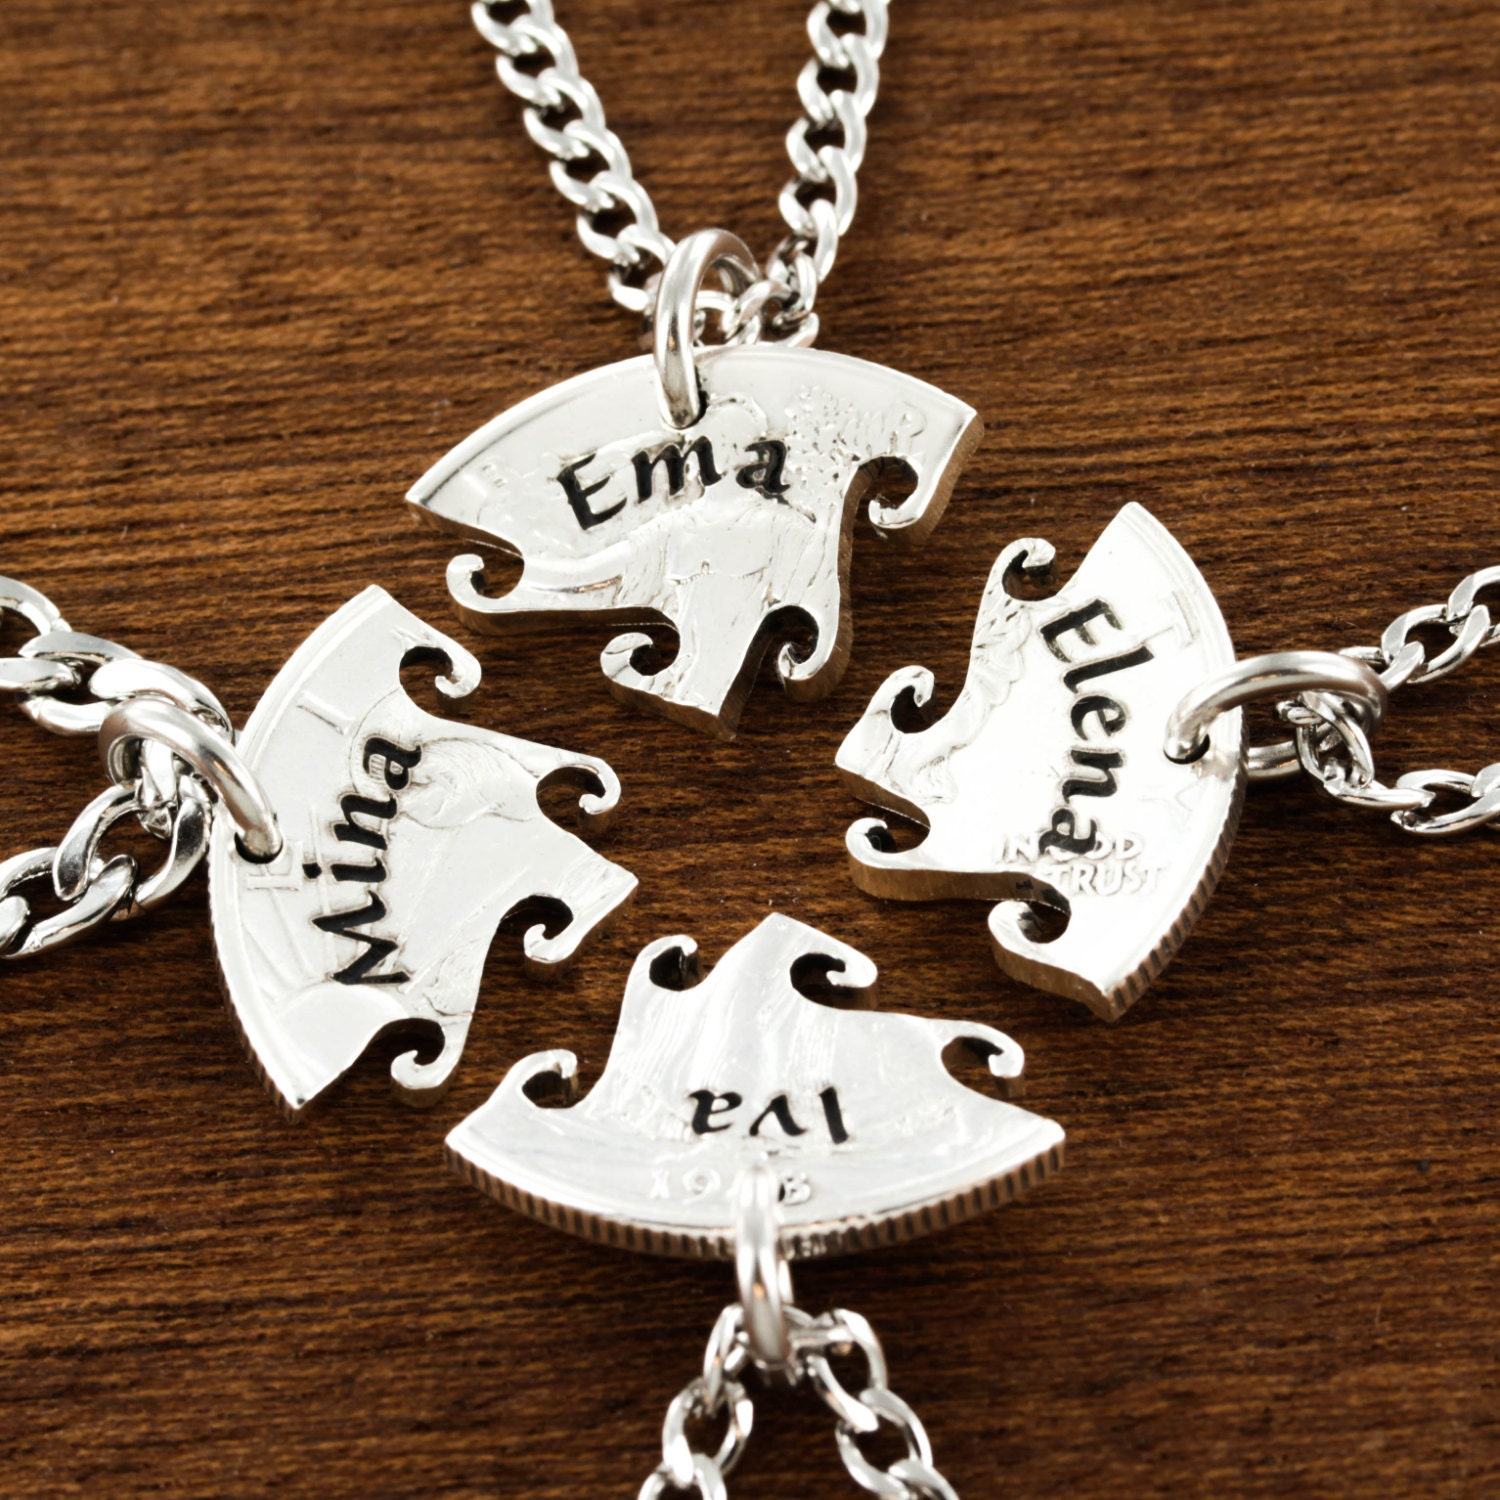 4 best friend necklace custom name necklaces interlocking